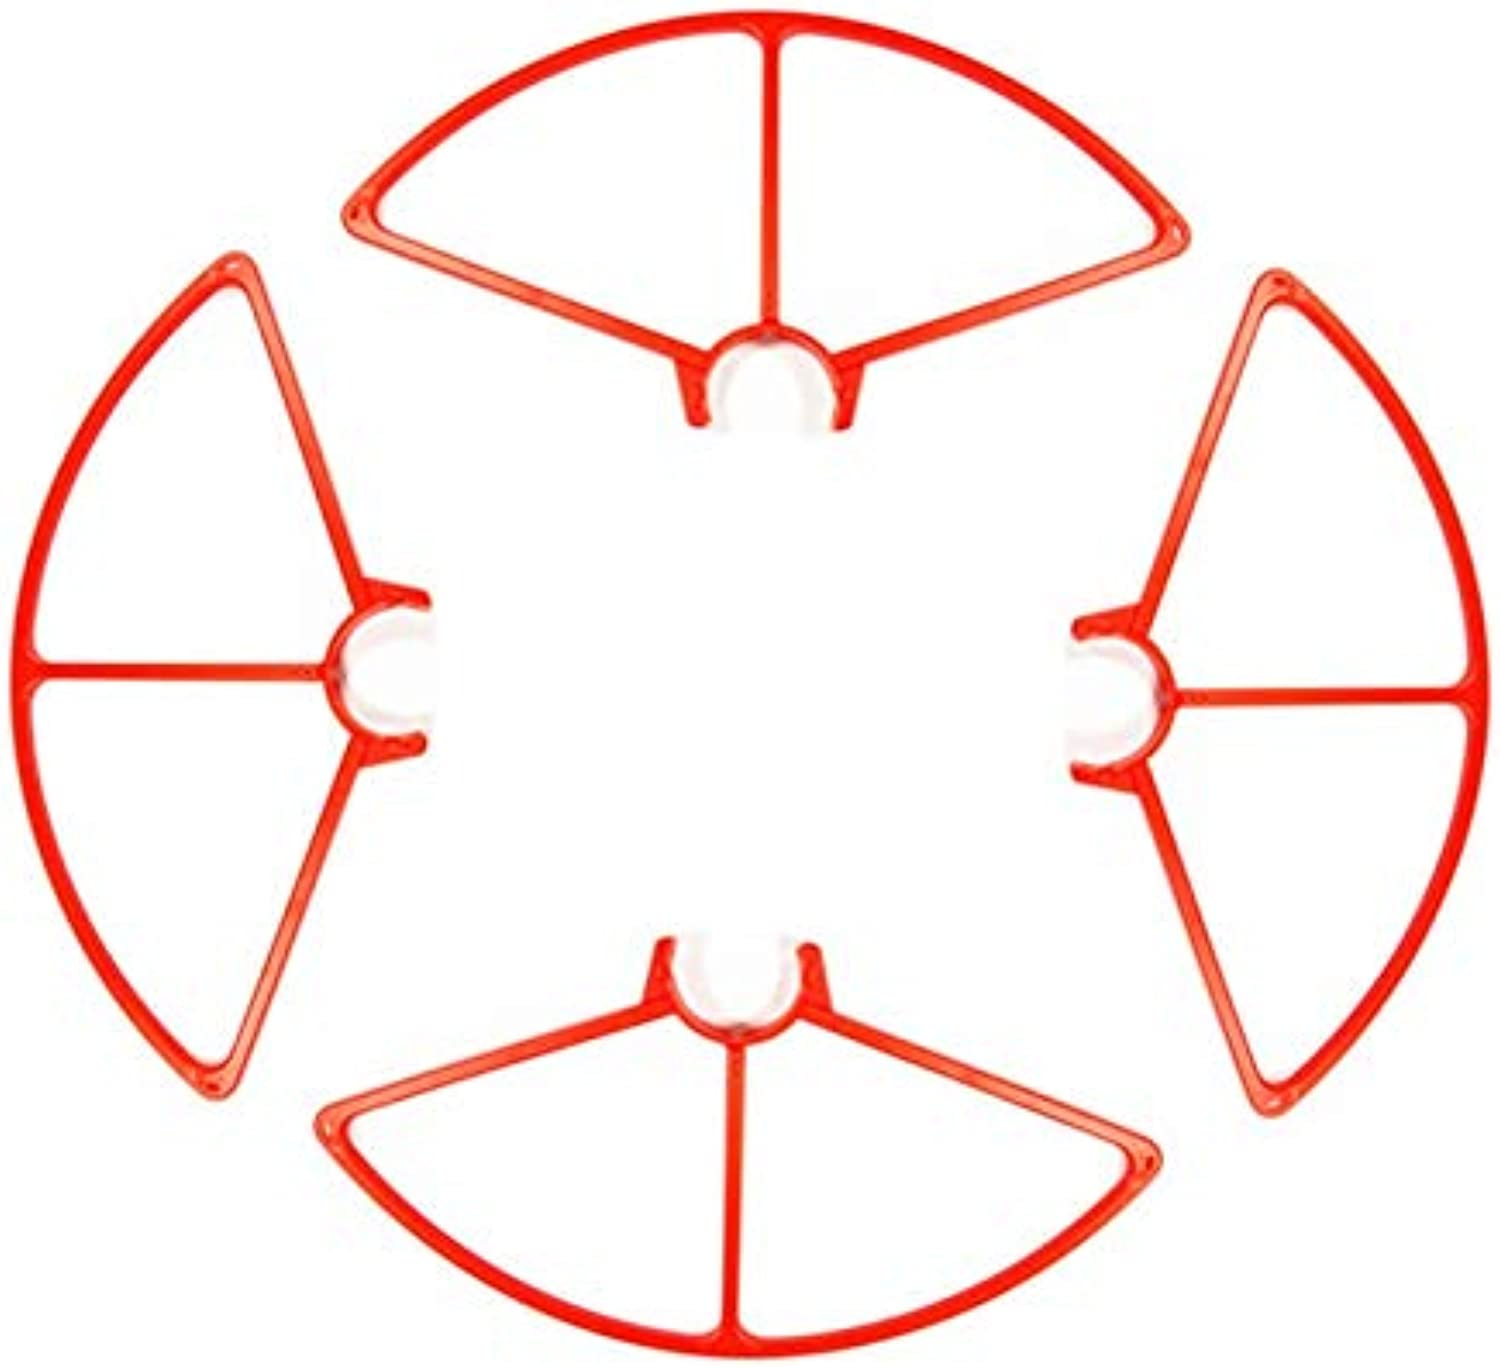 Generic 4 pcs YUNEEC Q500 Quadcopter Prop Propeller Guards Gules Predector Cover Bumpers Quick Release